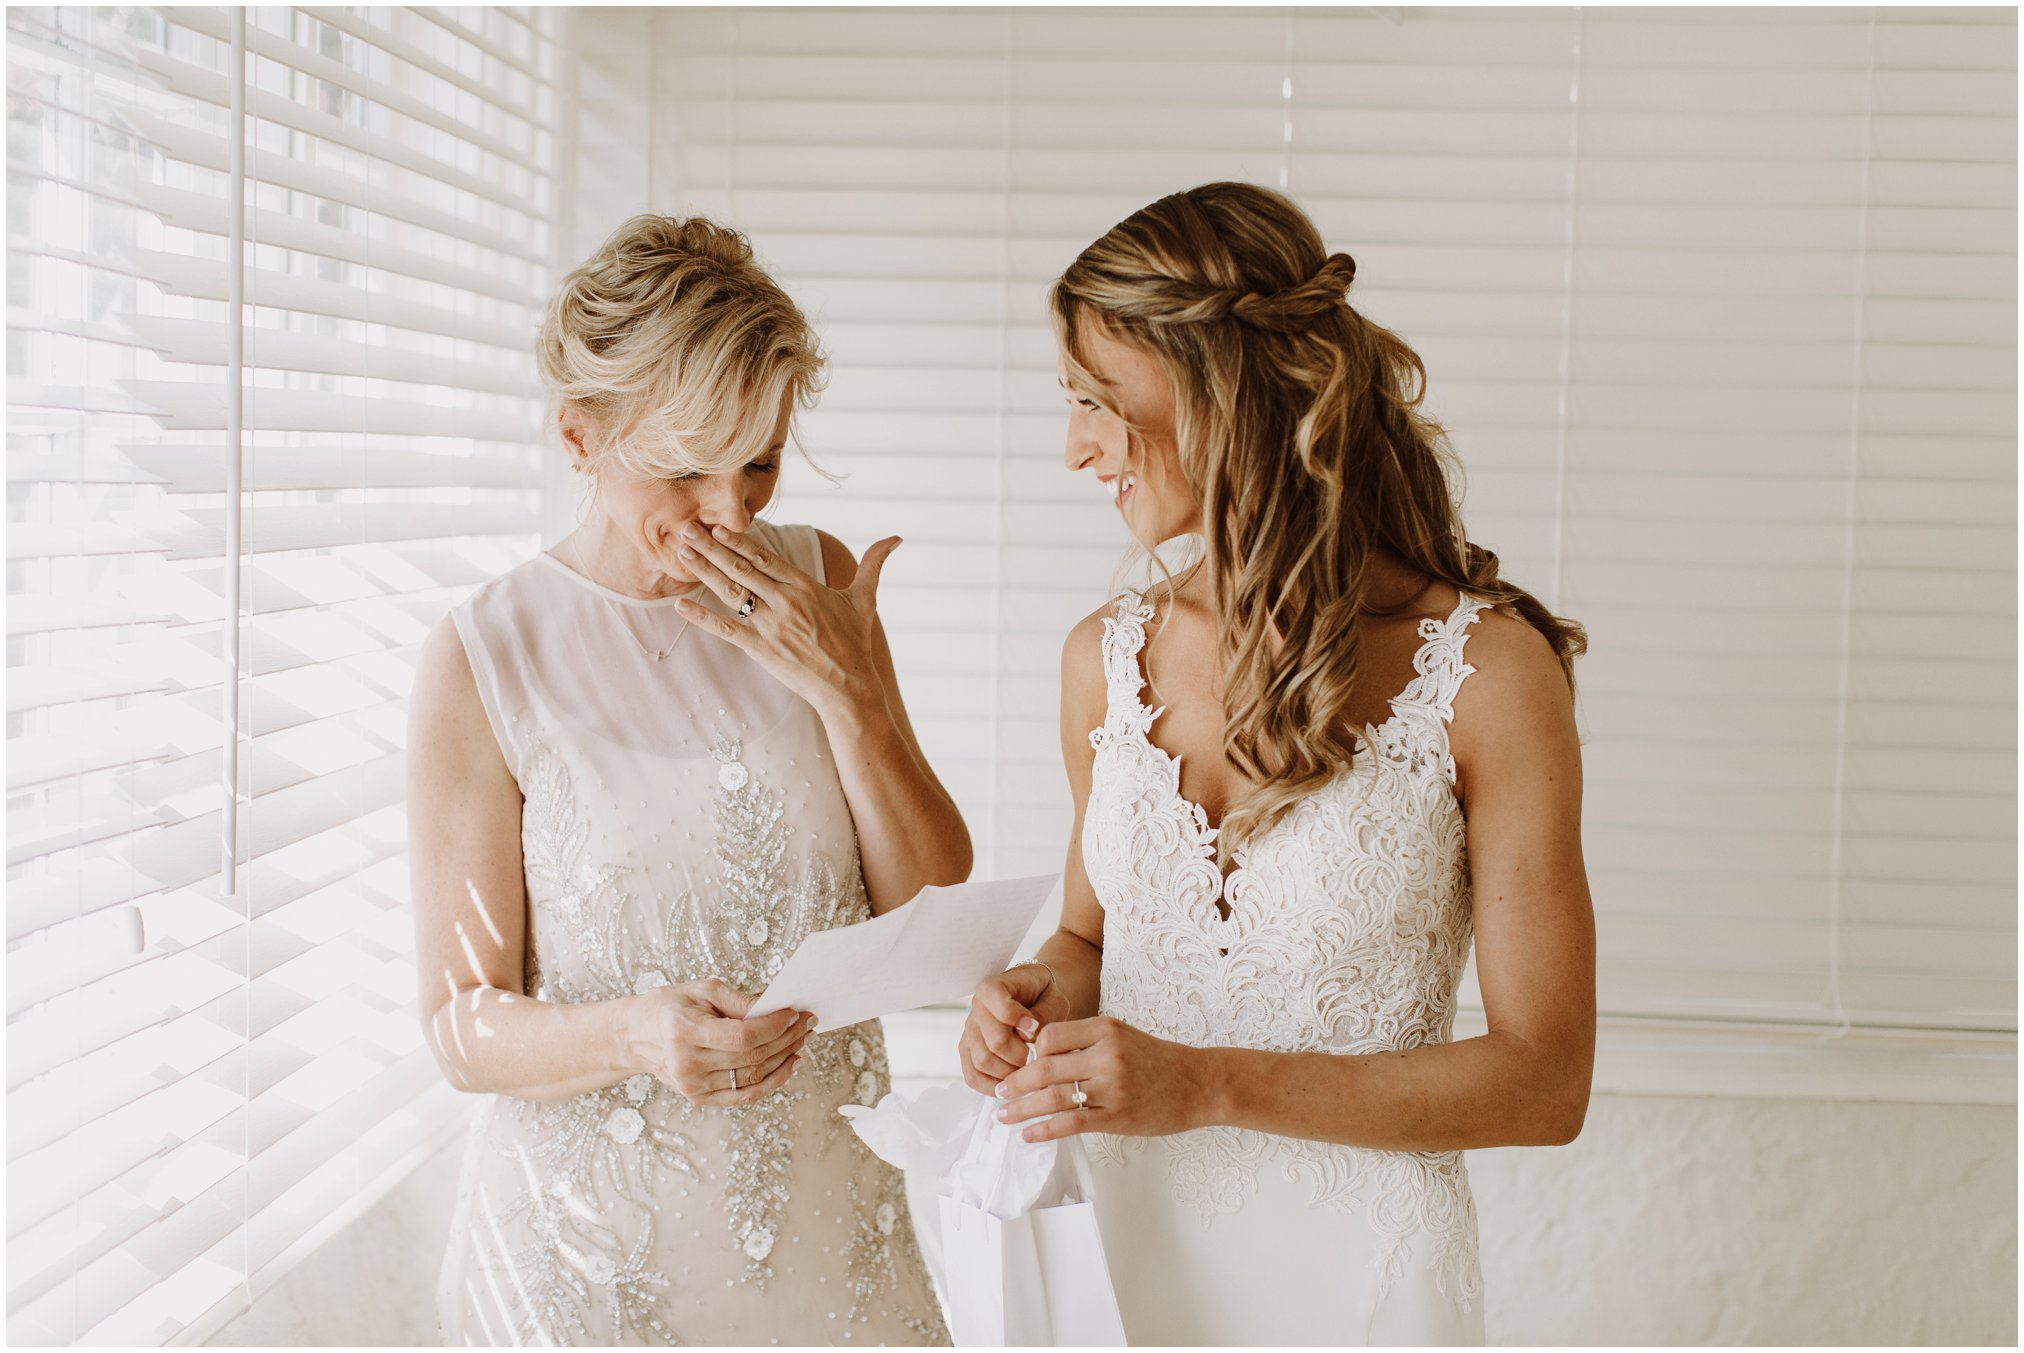 Annapolis Wedding Photographer, Kate Ann Photography, Timberlake Farm, Timberlake Farm Wedding, Airbnb wedding, Mother Daughter First Look